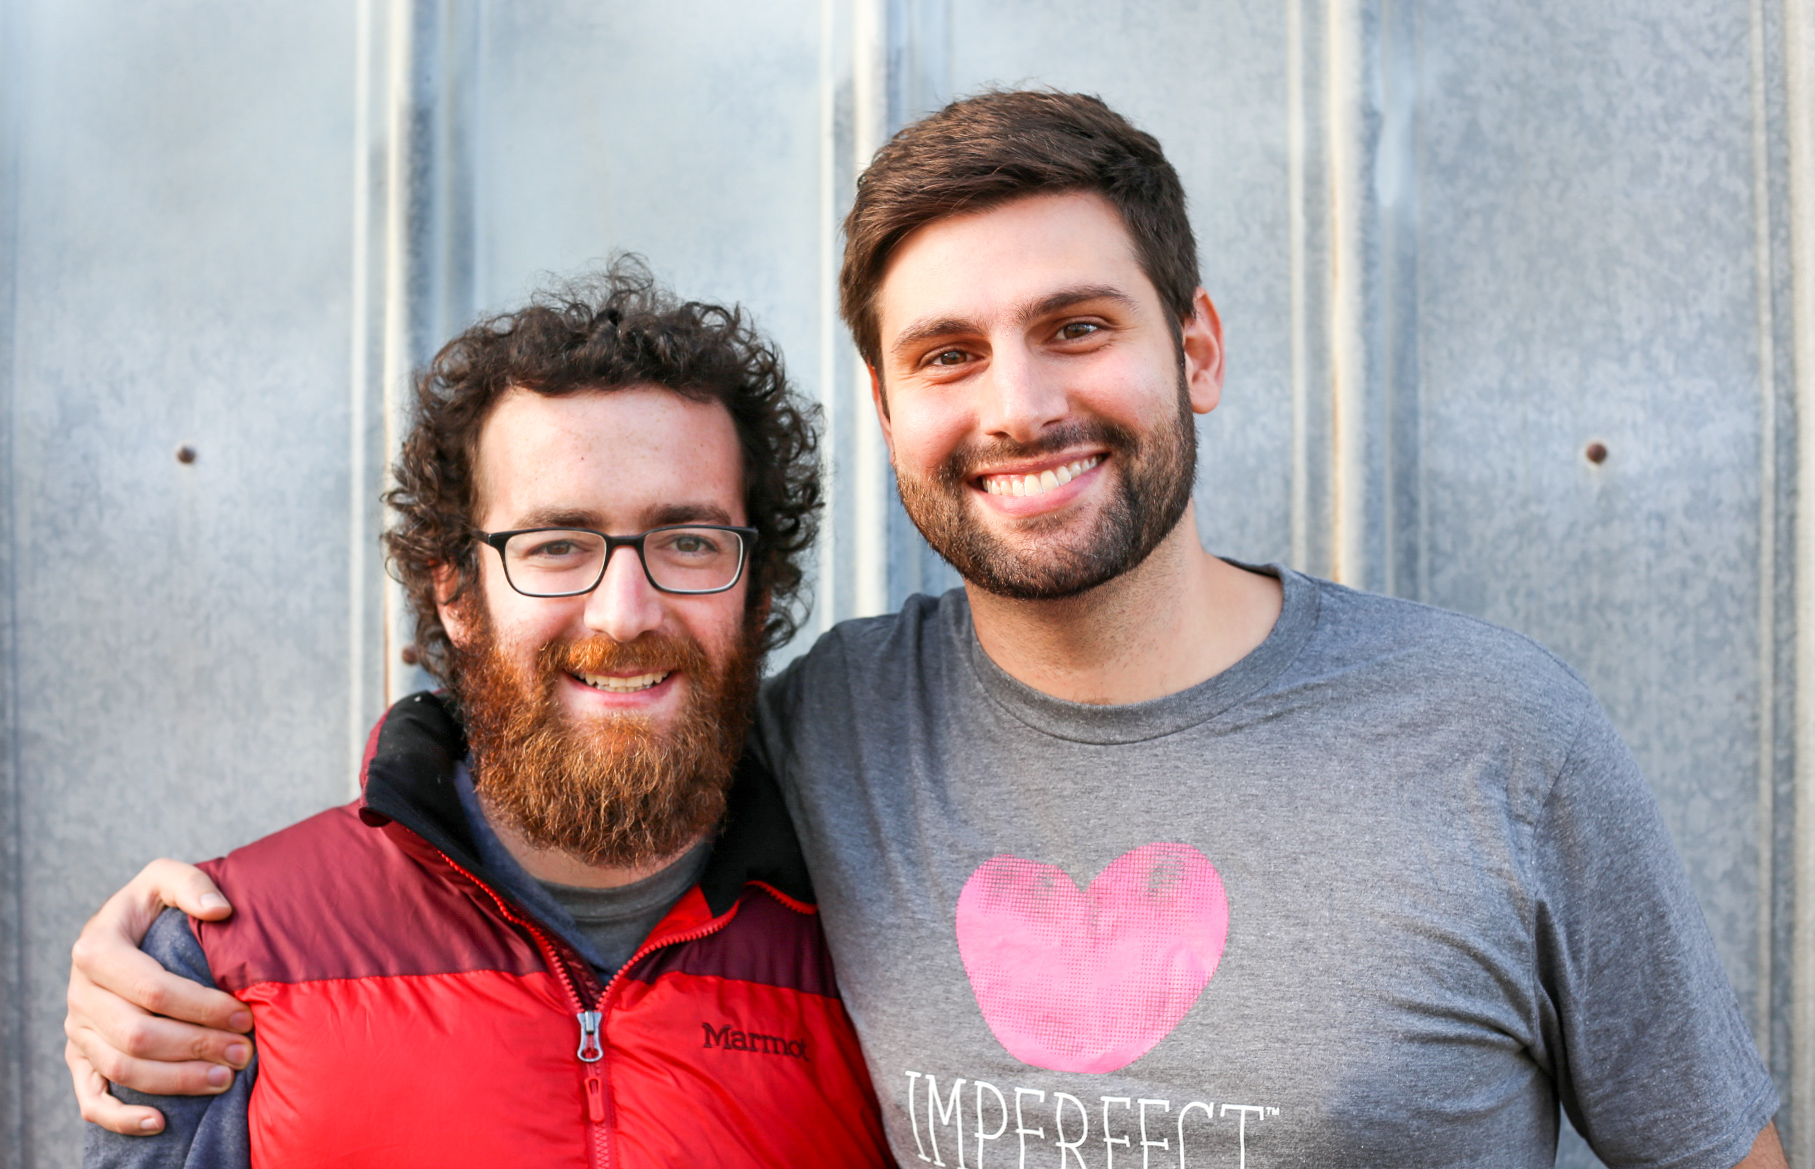 Co-founders Ben Chesler and Ben Simon are deeply grateful for you and your support of Imperfect this holiday season.